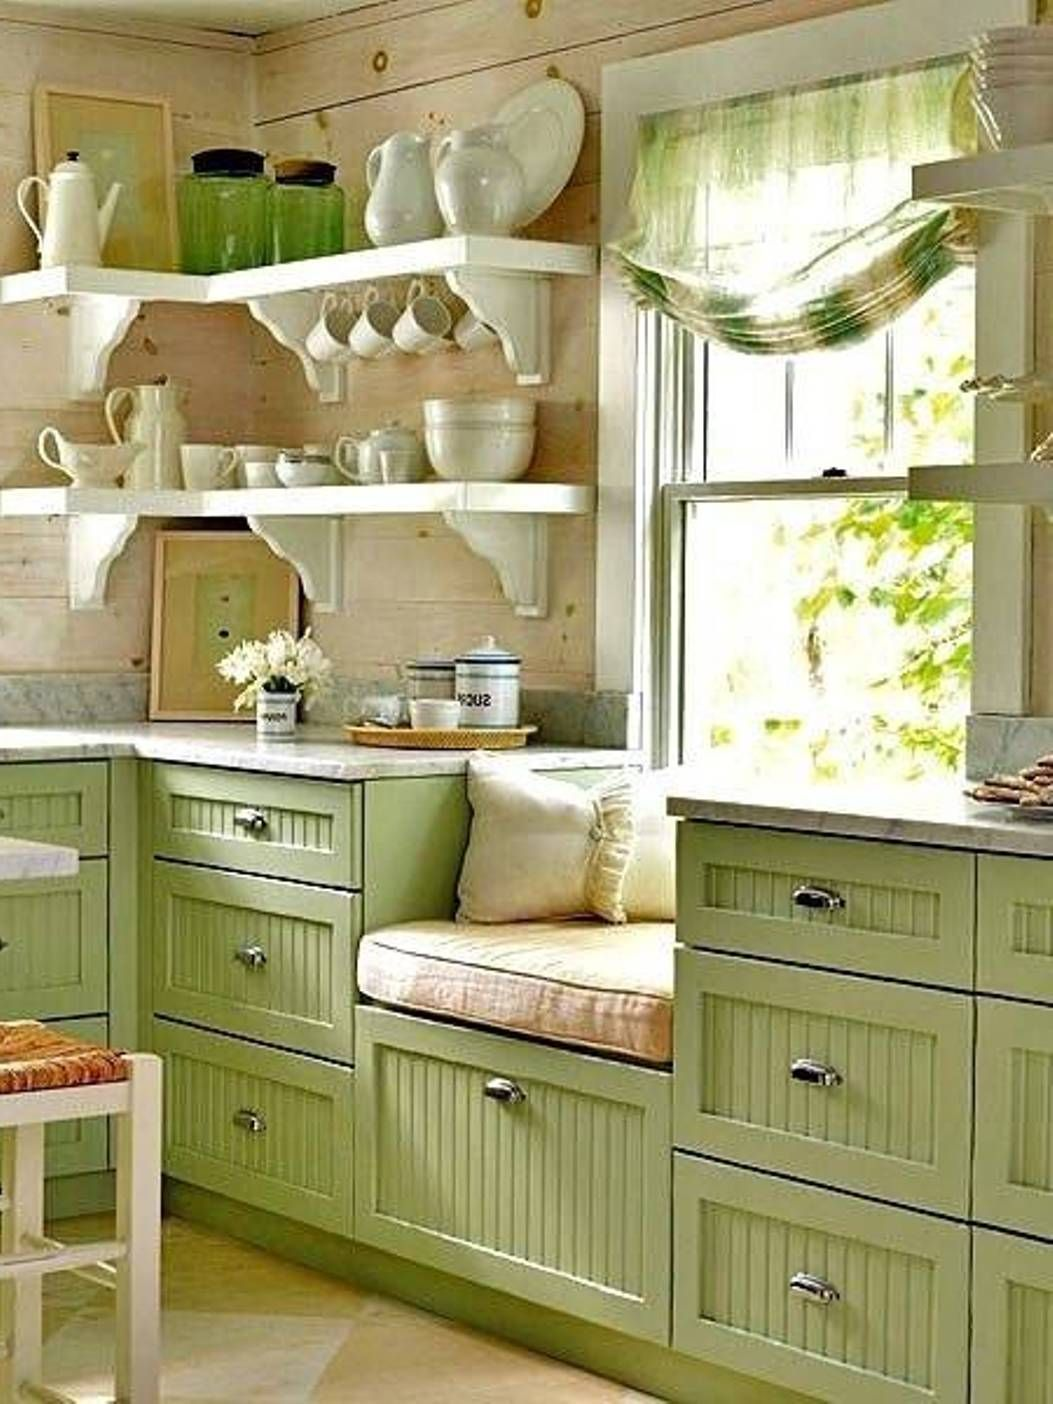 19 amazing kitchen decorating ideas kitchens house and 19 amazing kitchen decorating ideas